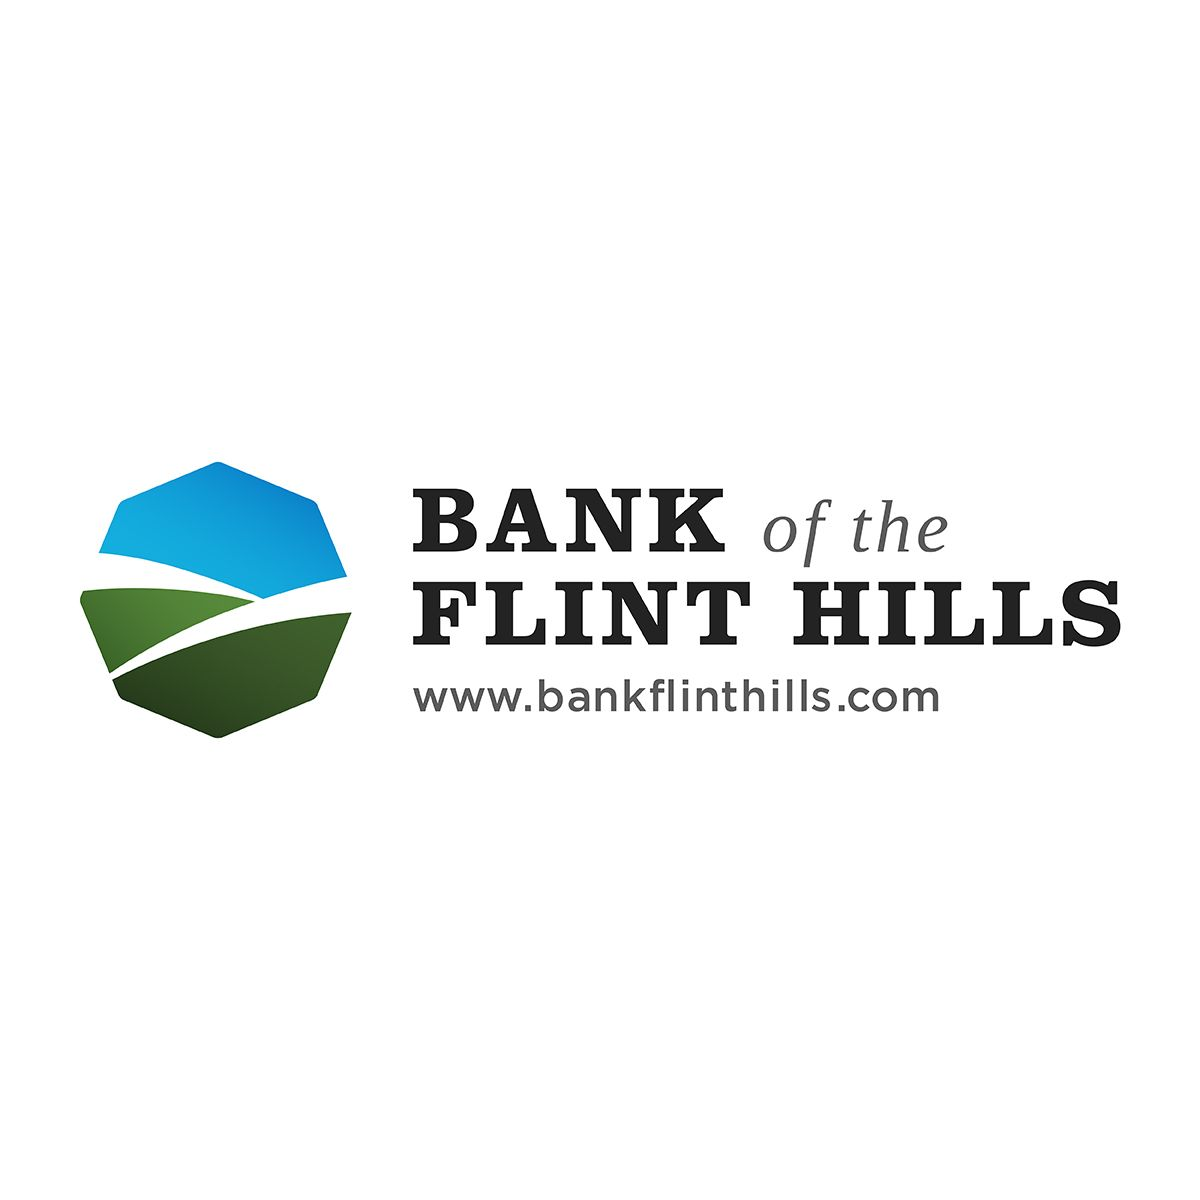 bank-of-flint-hills-logo